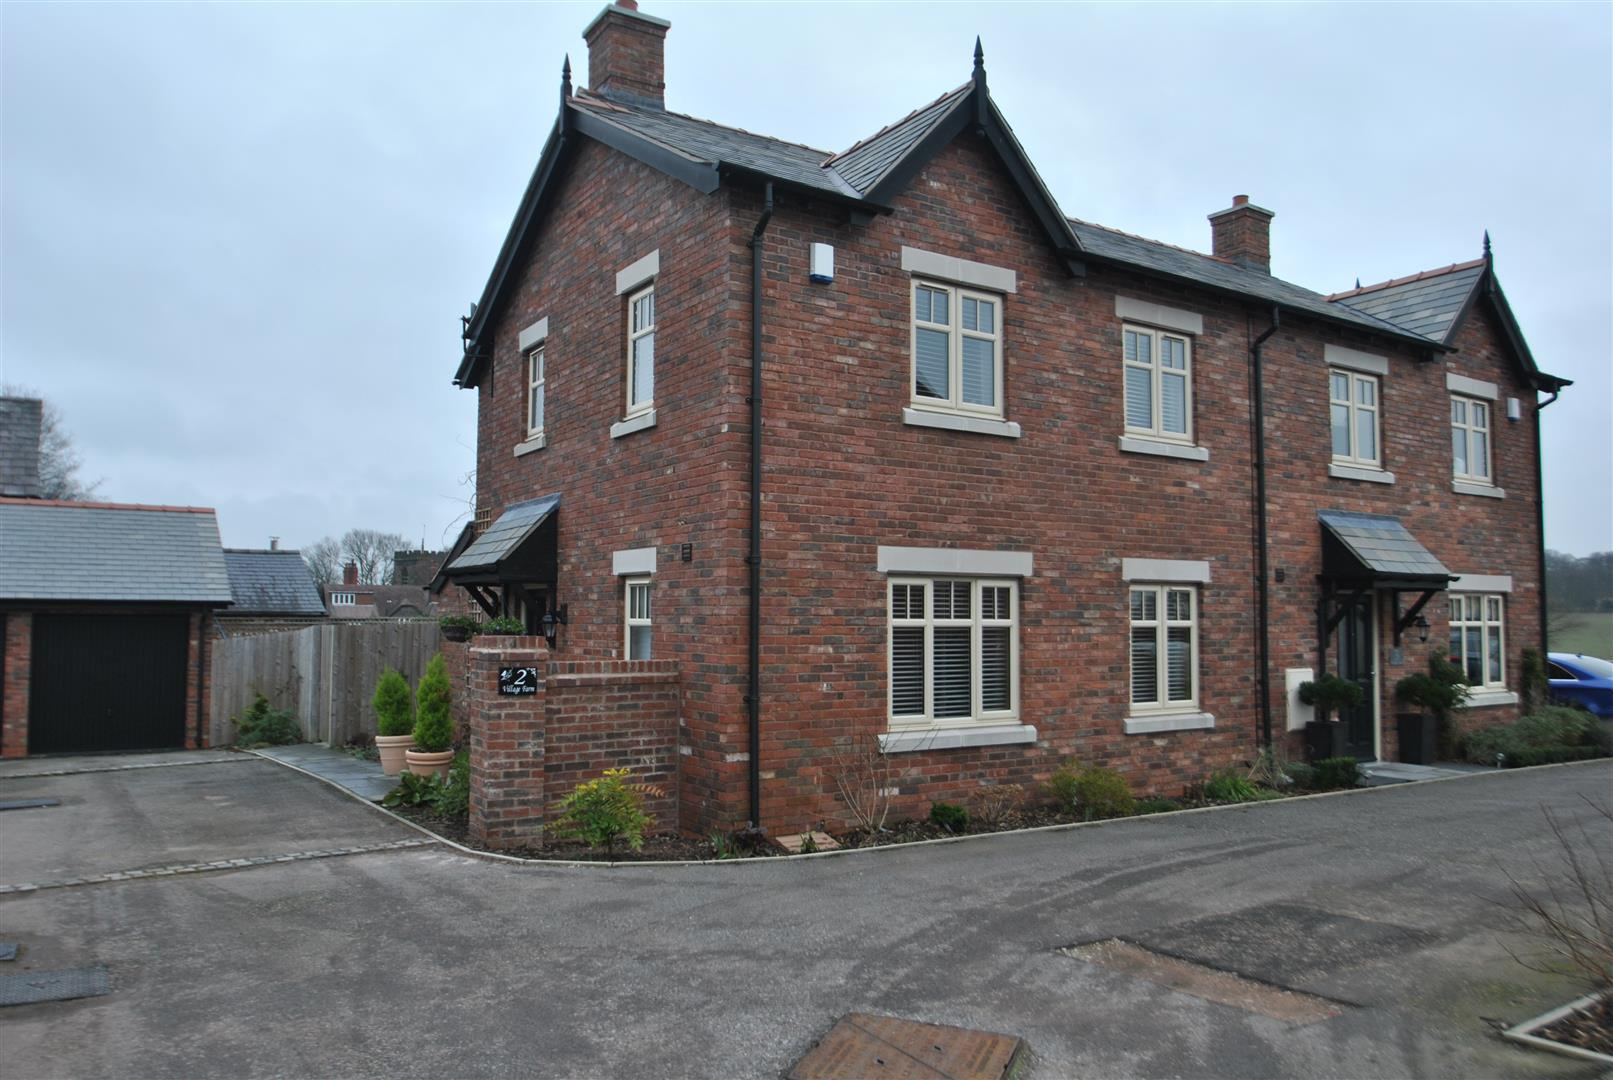 3 Bedrooms Semi Detached House for sale in Chester Road, DARESBURY, Warrington, WA4